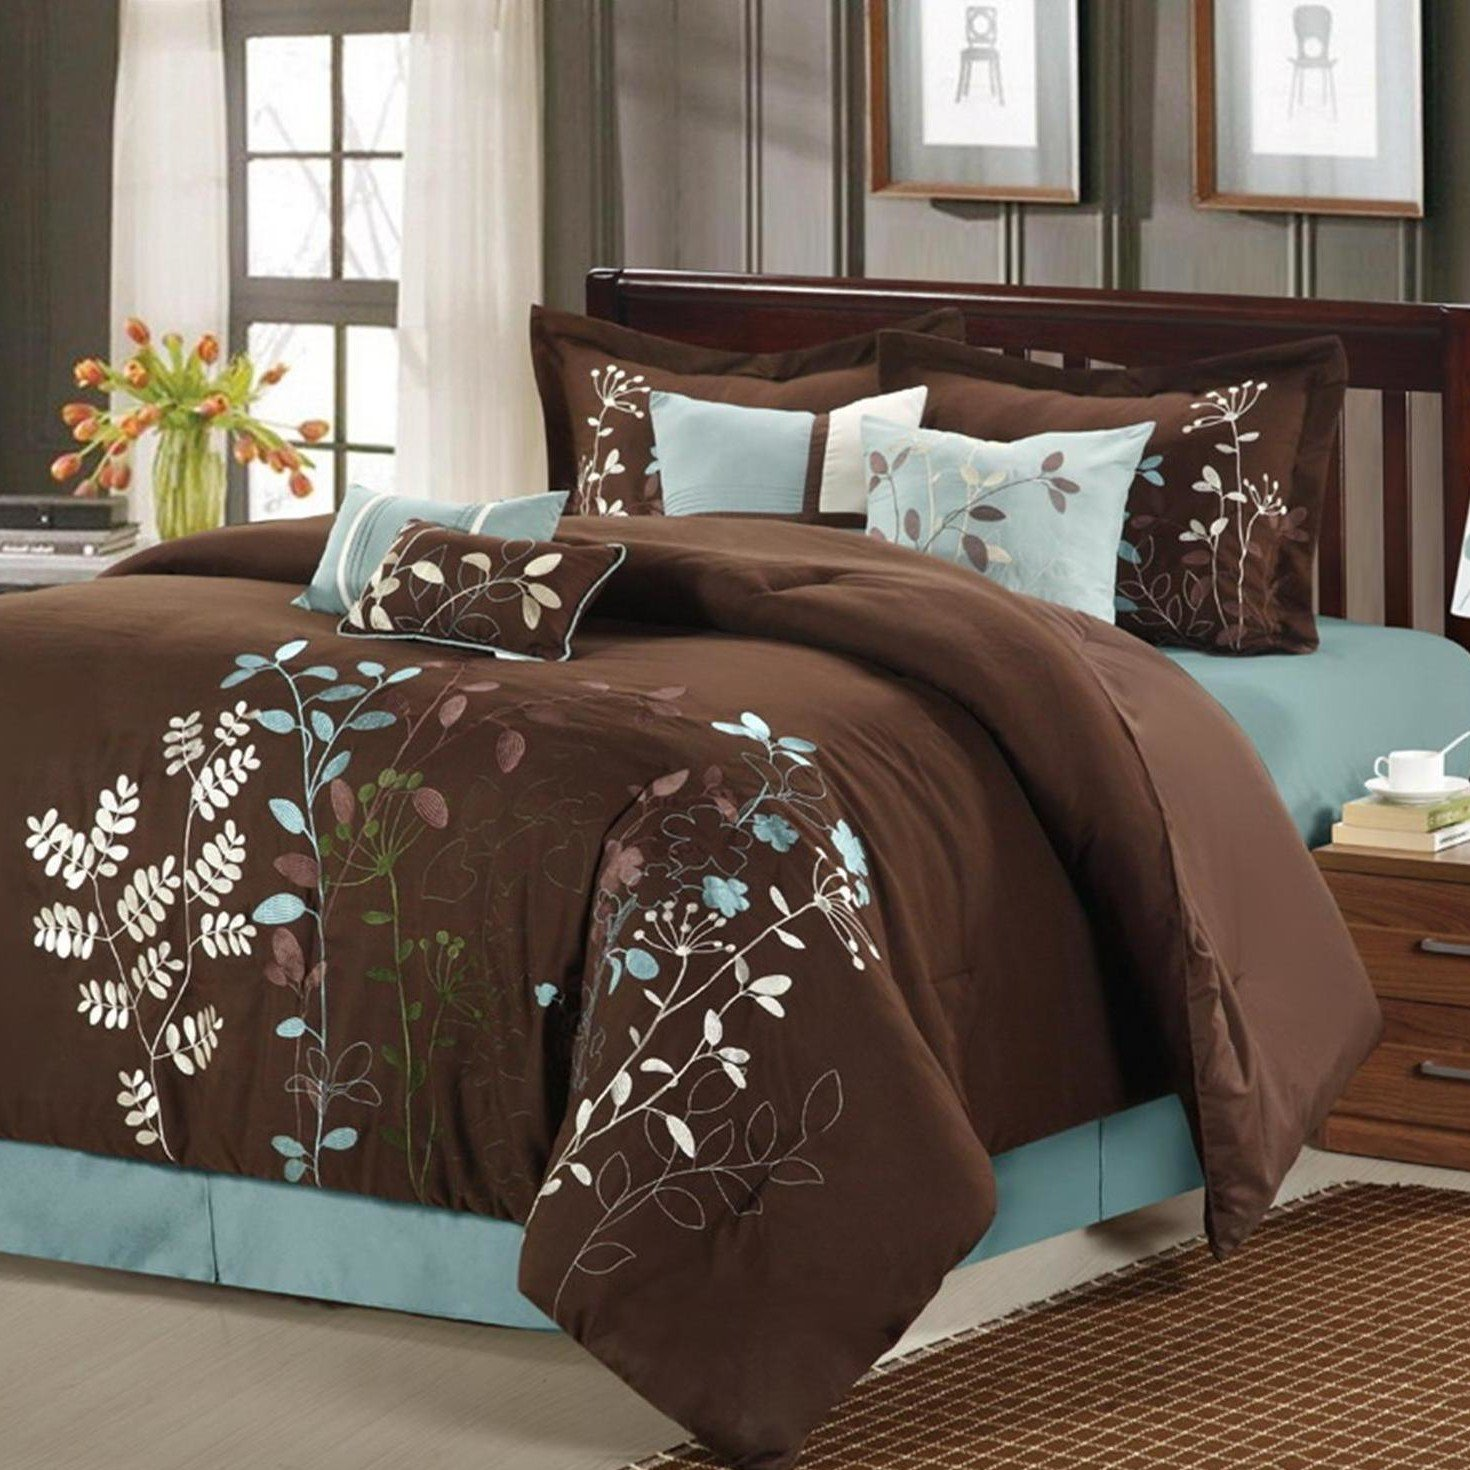 8 Piece Modern Bedding Comforter Set